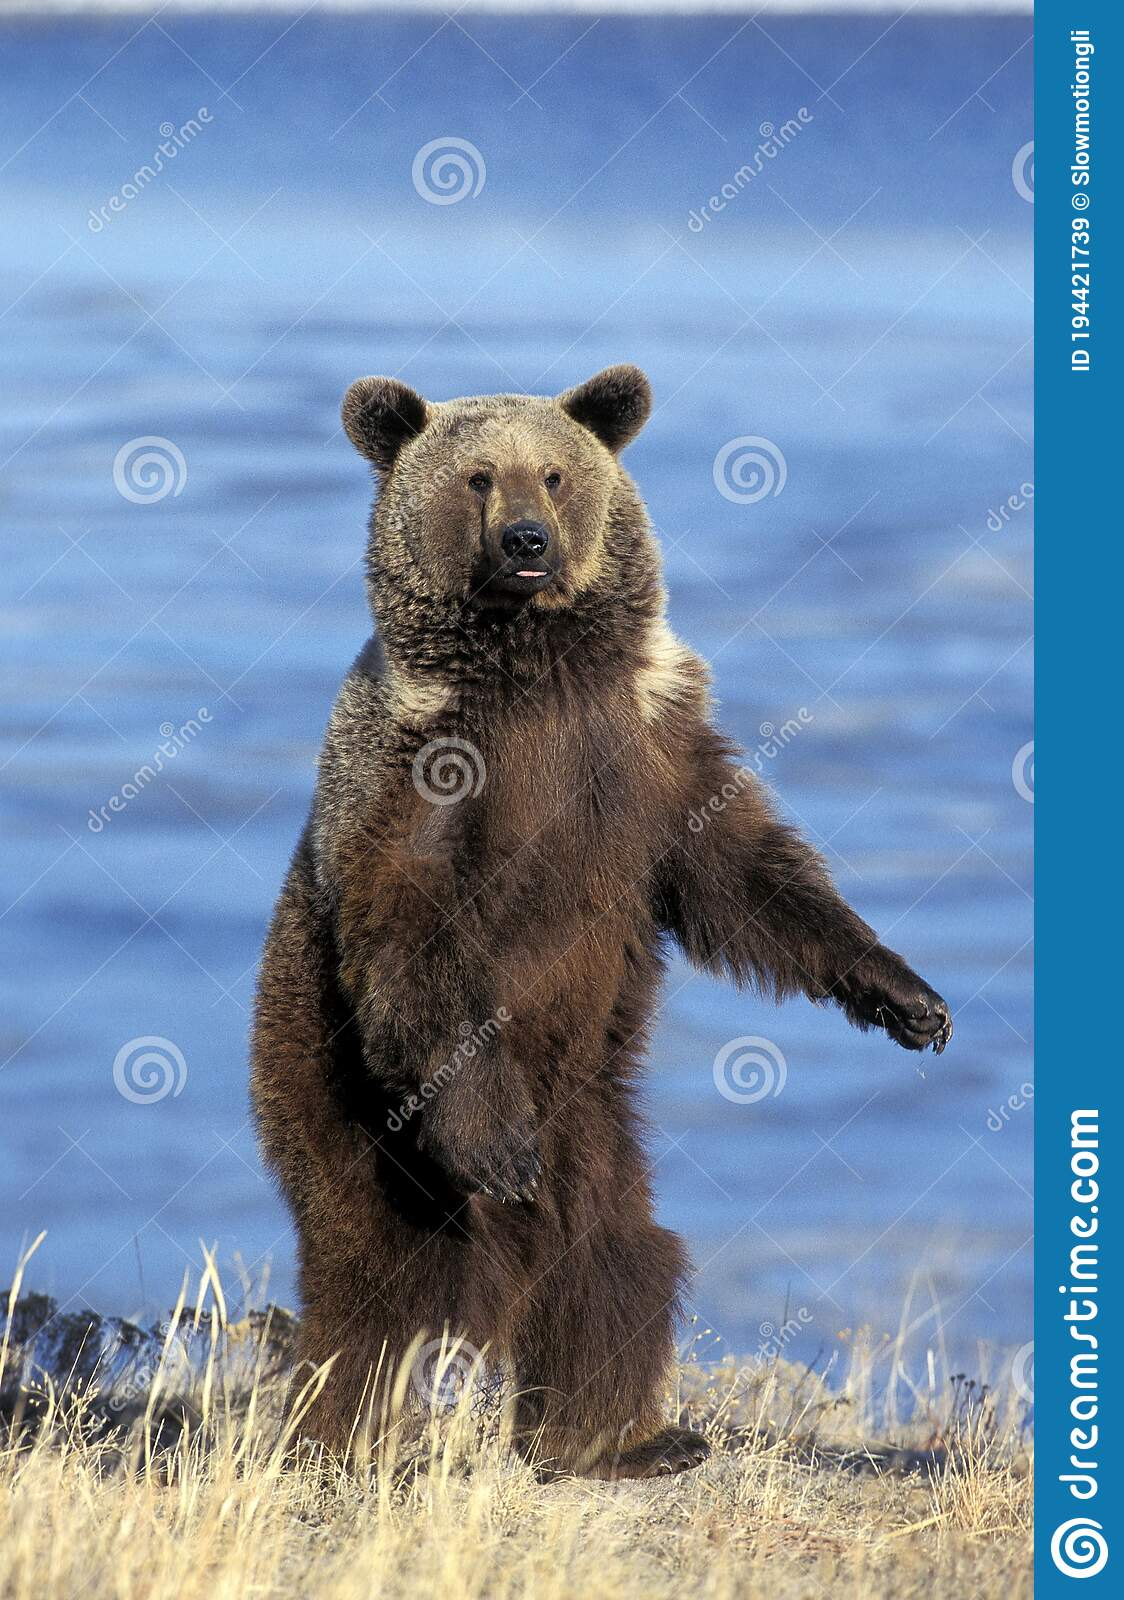 2 689 Grizzly Bear Standing Photos Free Royalty Free Stock Photos From Dreamstime